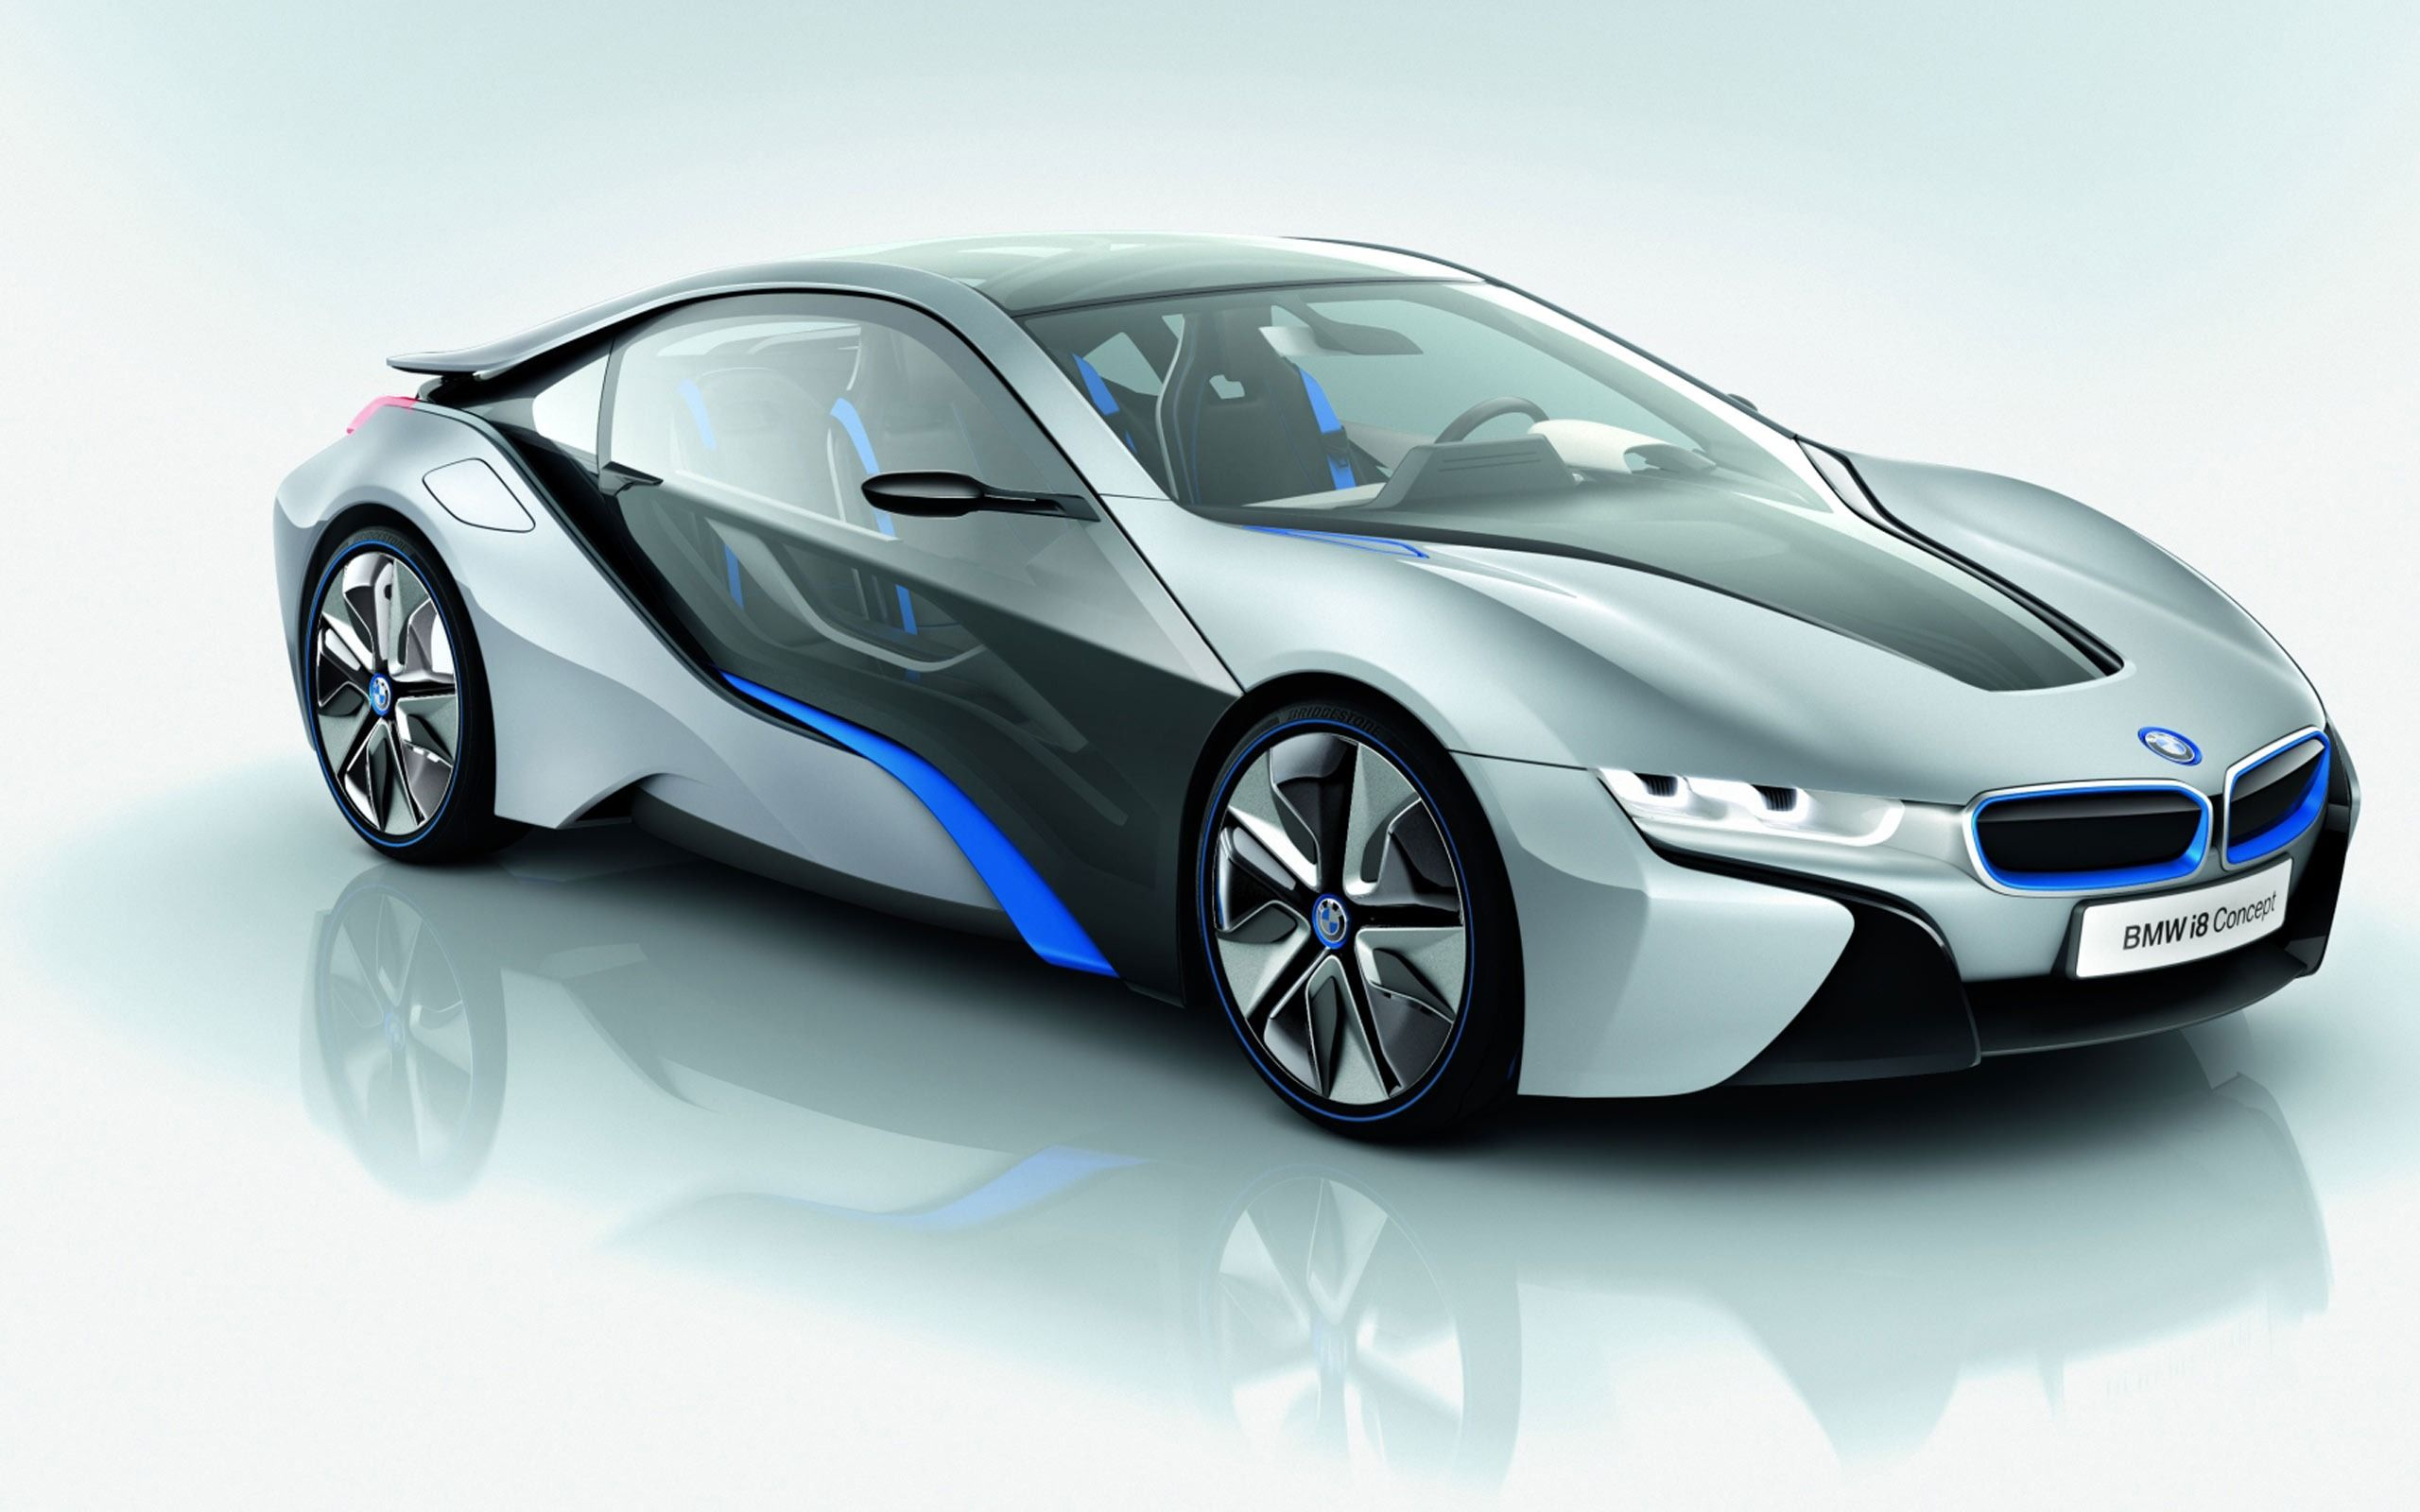 Bmw Cars Wallpapers Hd Free Download Pictures Bmw I8 Red And Blue 332526 Hd Wallpaper Backgrounds Download